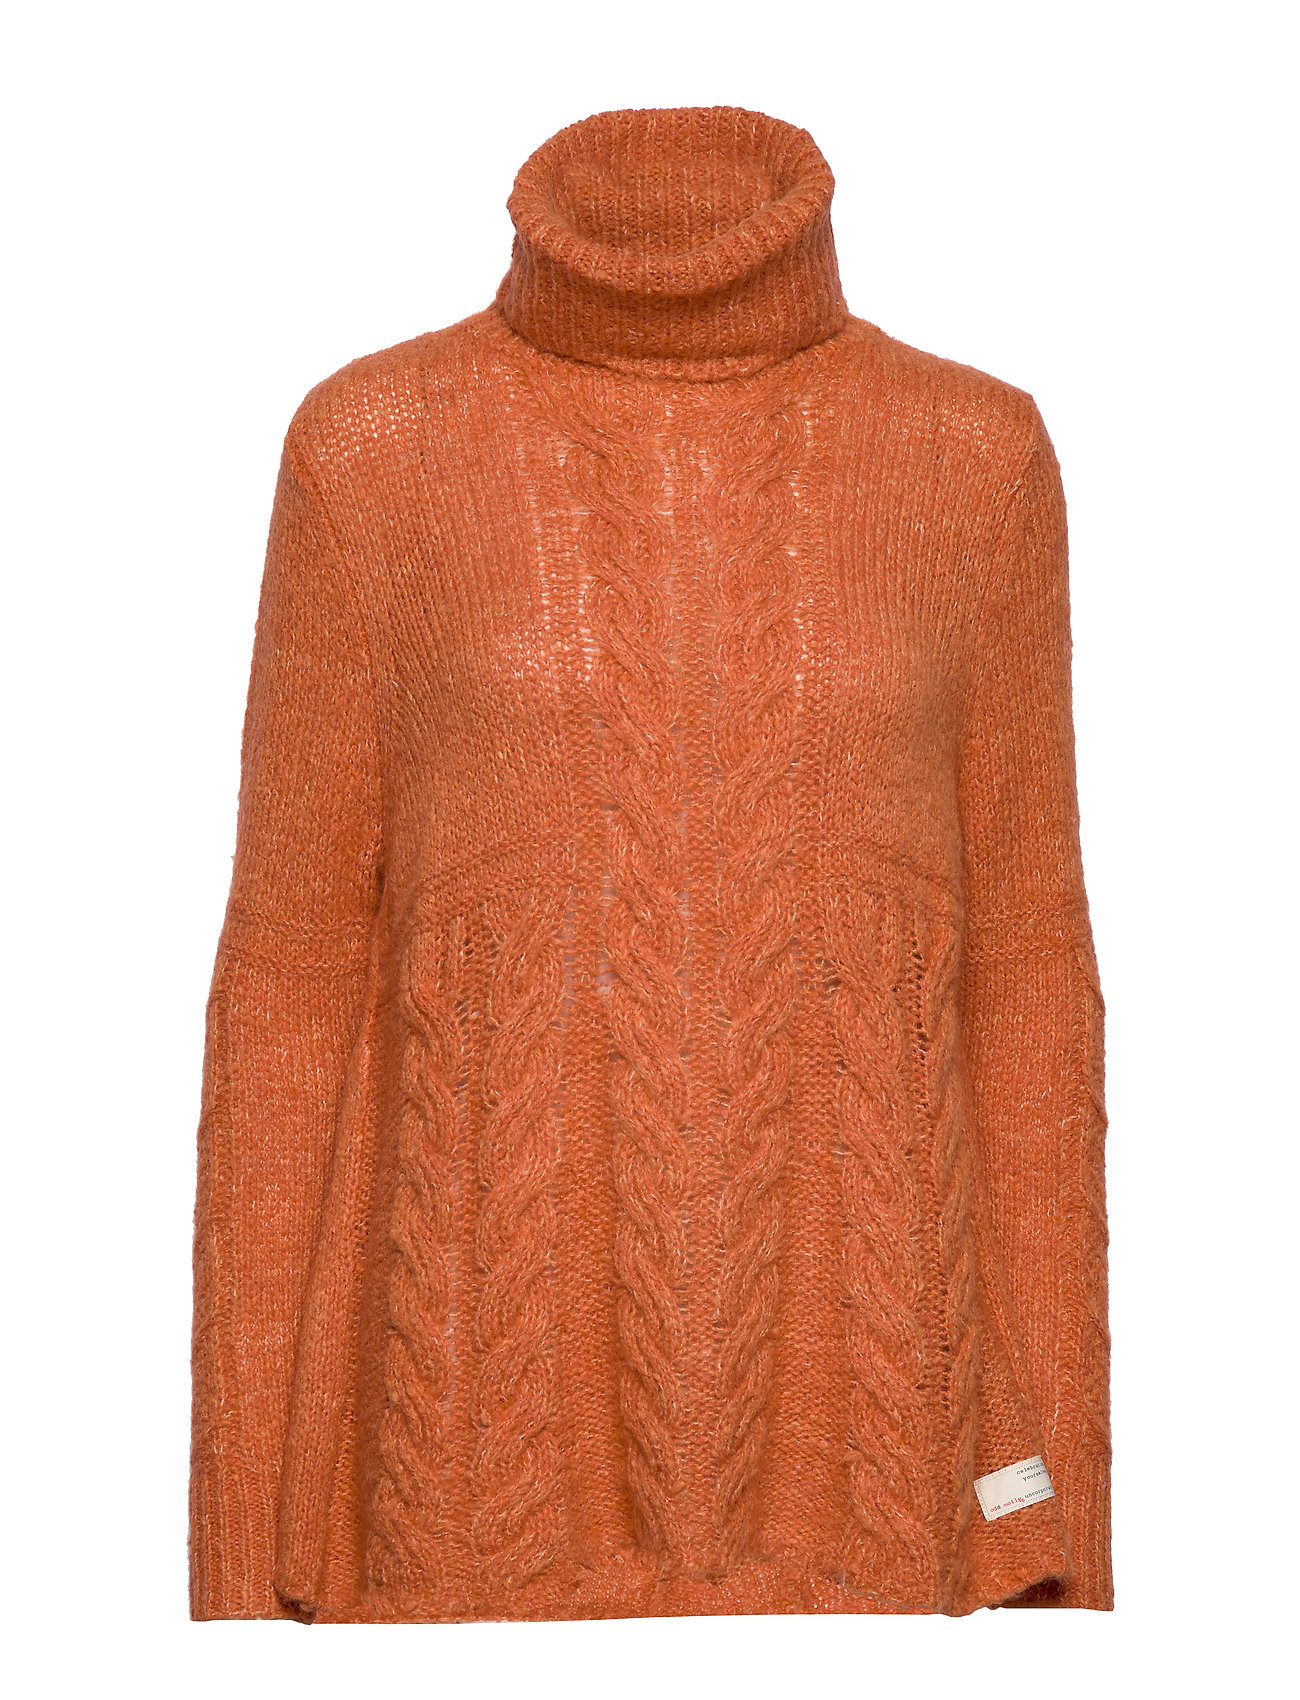 ODD MOLLY Cozy Hugs Turtleneck - DEEP ORANGE